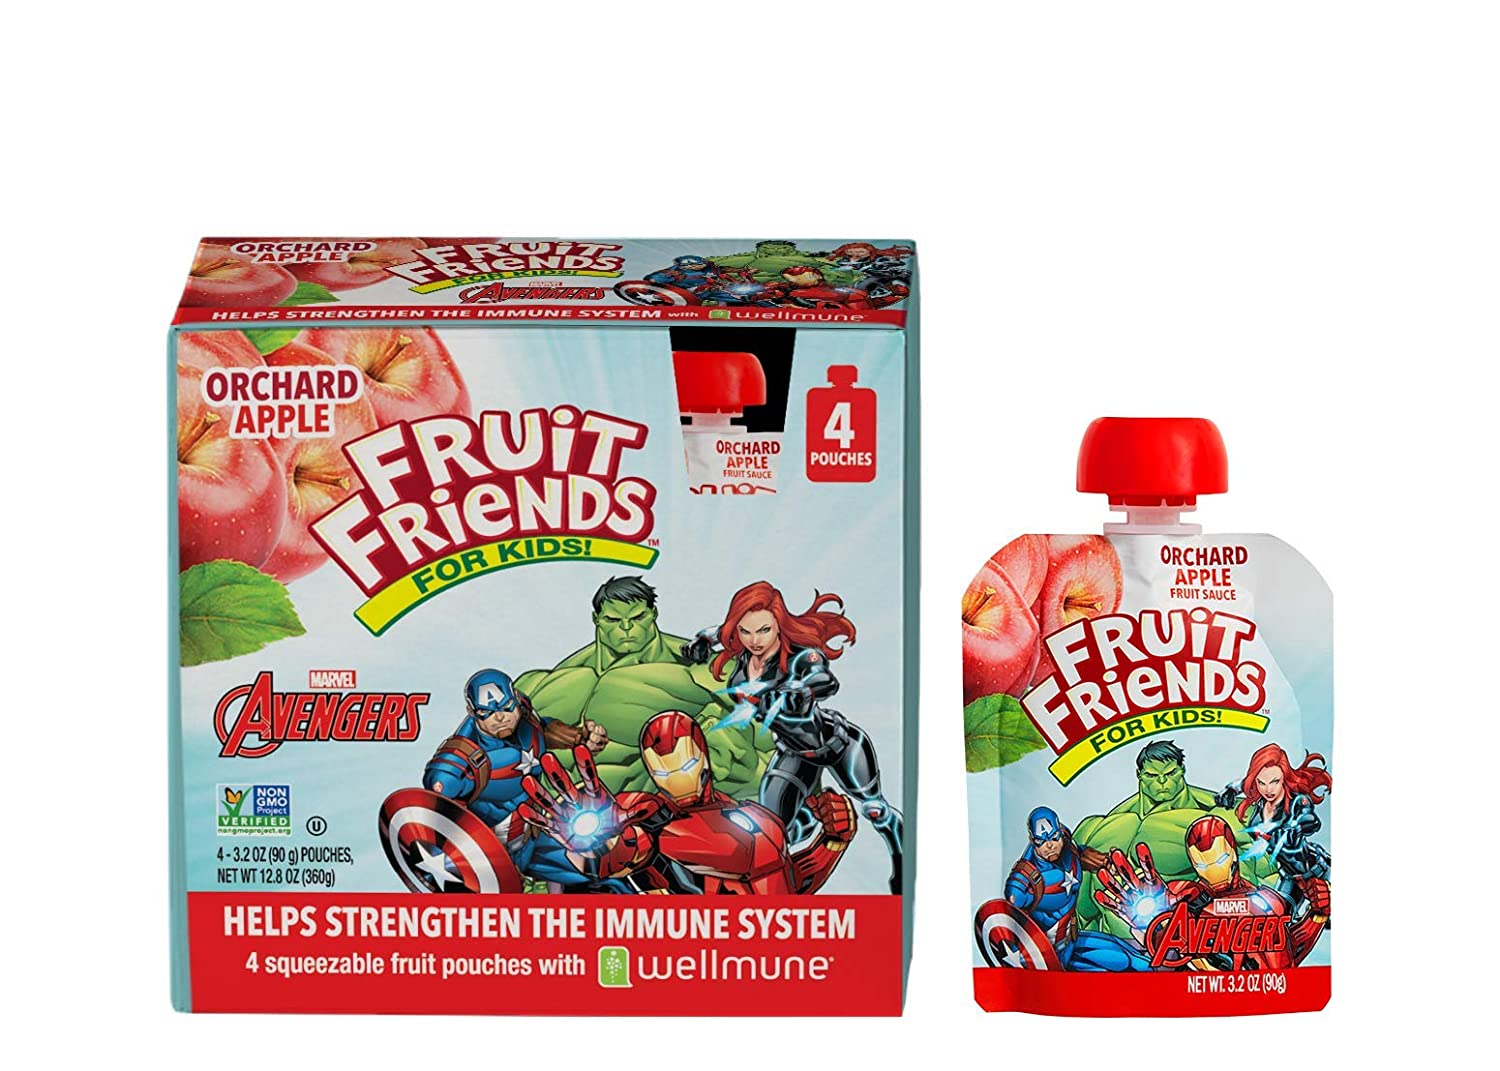 Avengers Fruit Friends Orchard Applesauce With Wellmune - 3.2 Ounce (24 BPA Free Pouches) - Gluten Free - Dairy Free - Allergen Free - No Added Sweeteners